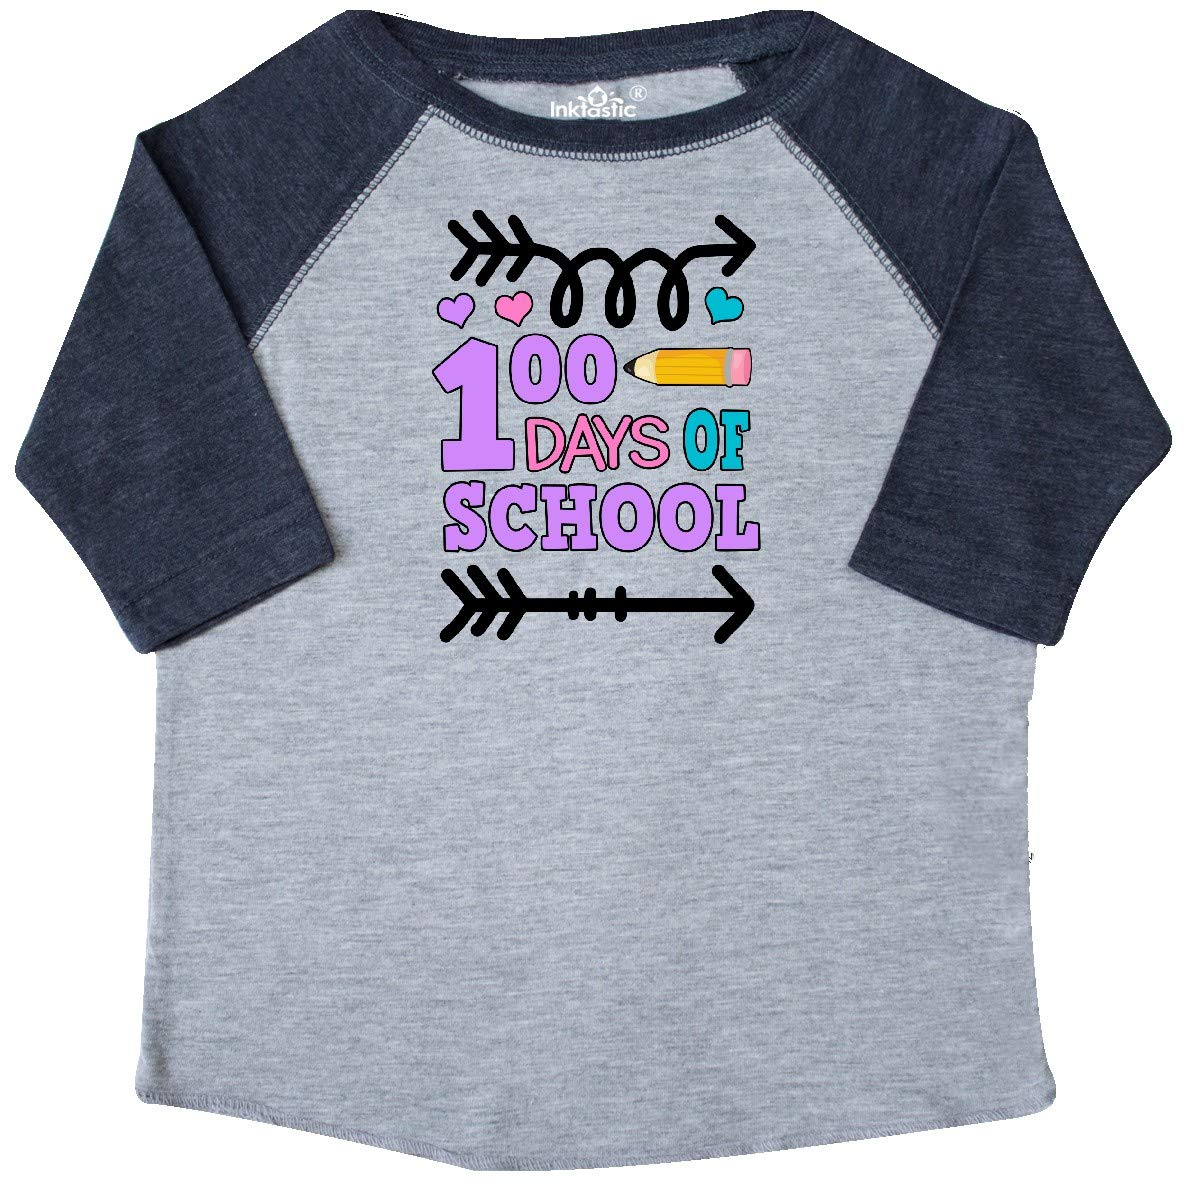 inktastic 100 Days of School with Arrows Toddler T-Shirt